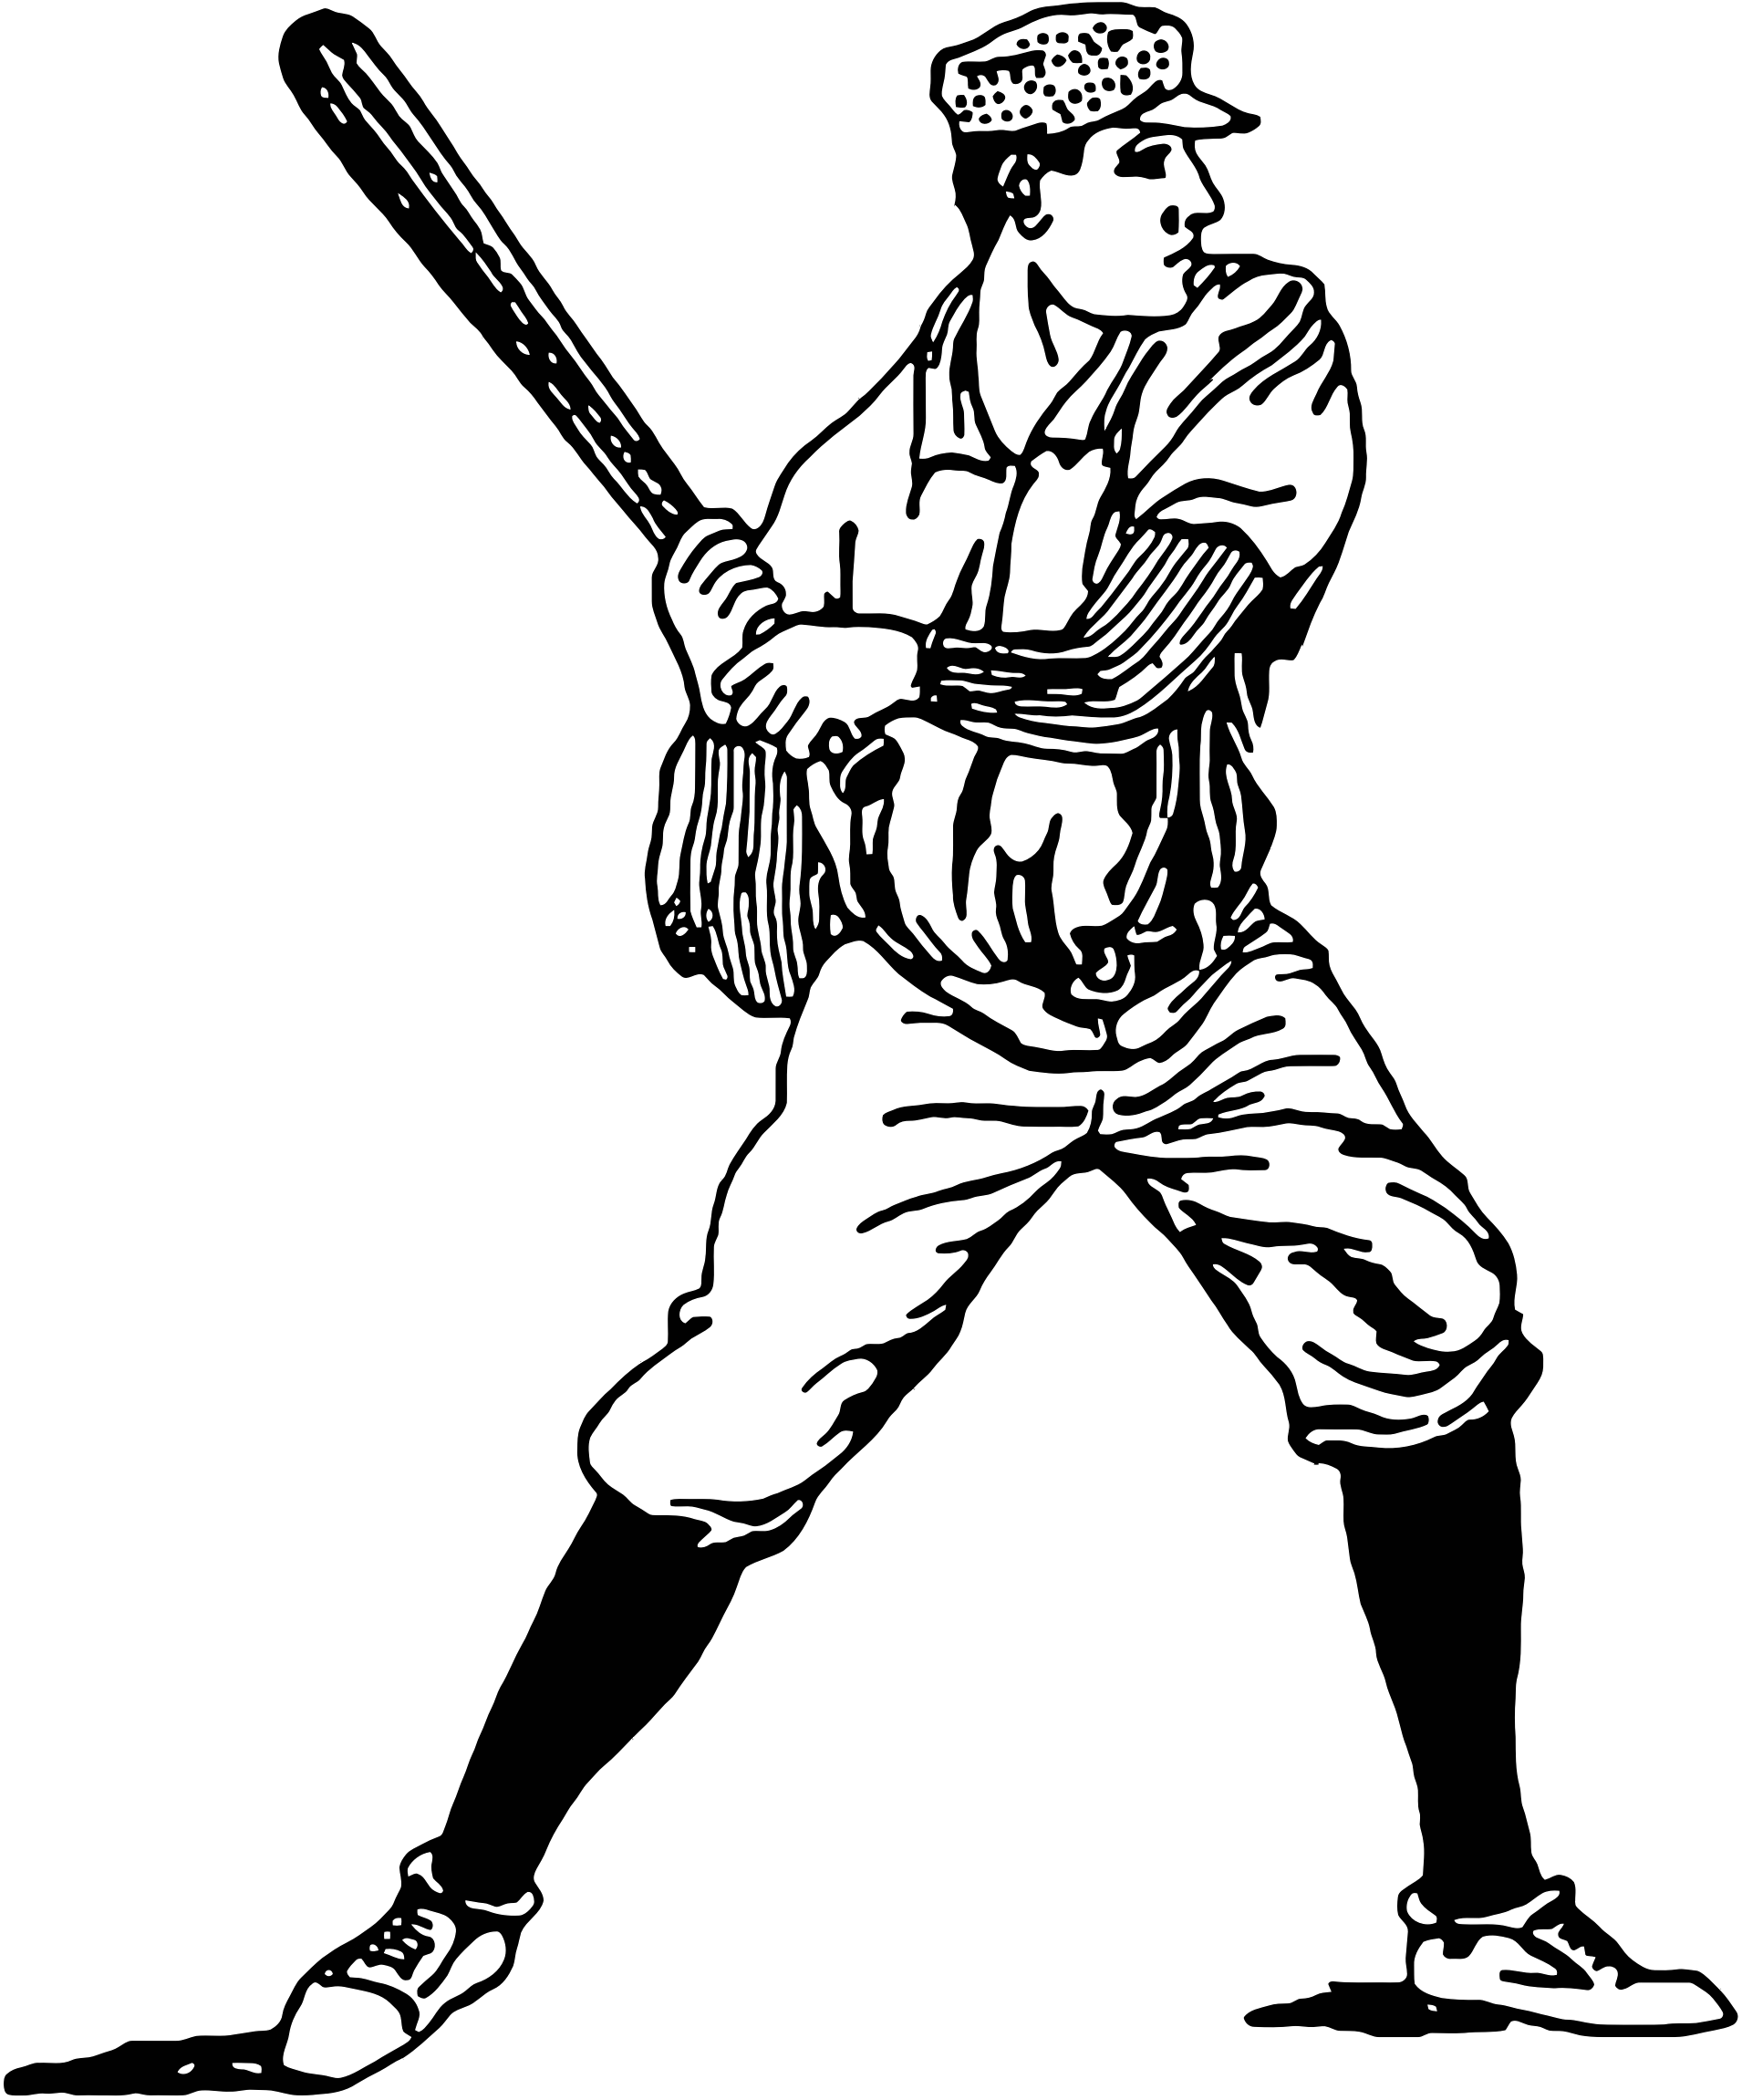 Clipart - Vintage Baseball Player Illustration clip black and white